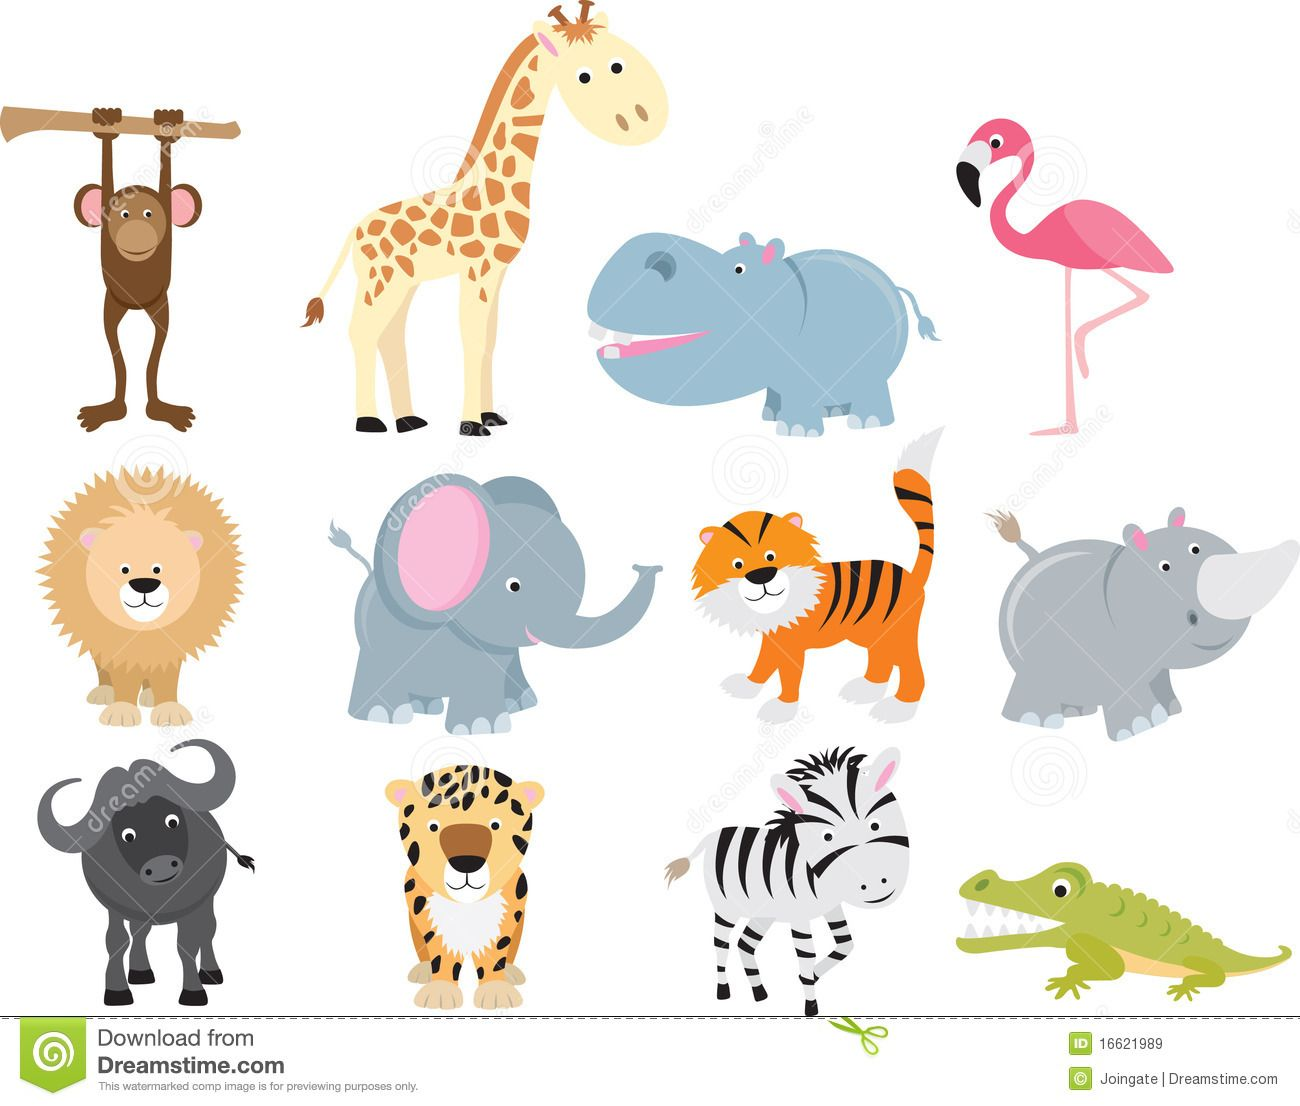 Cute Wild Safari Animal Cartoon Set Download From Over 49